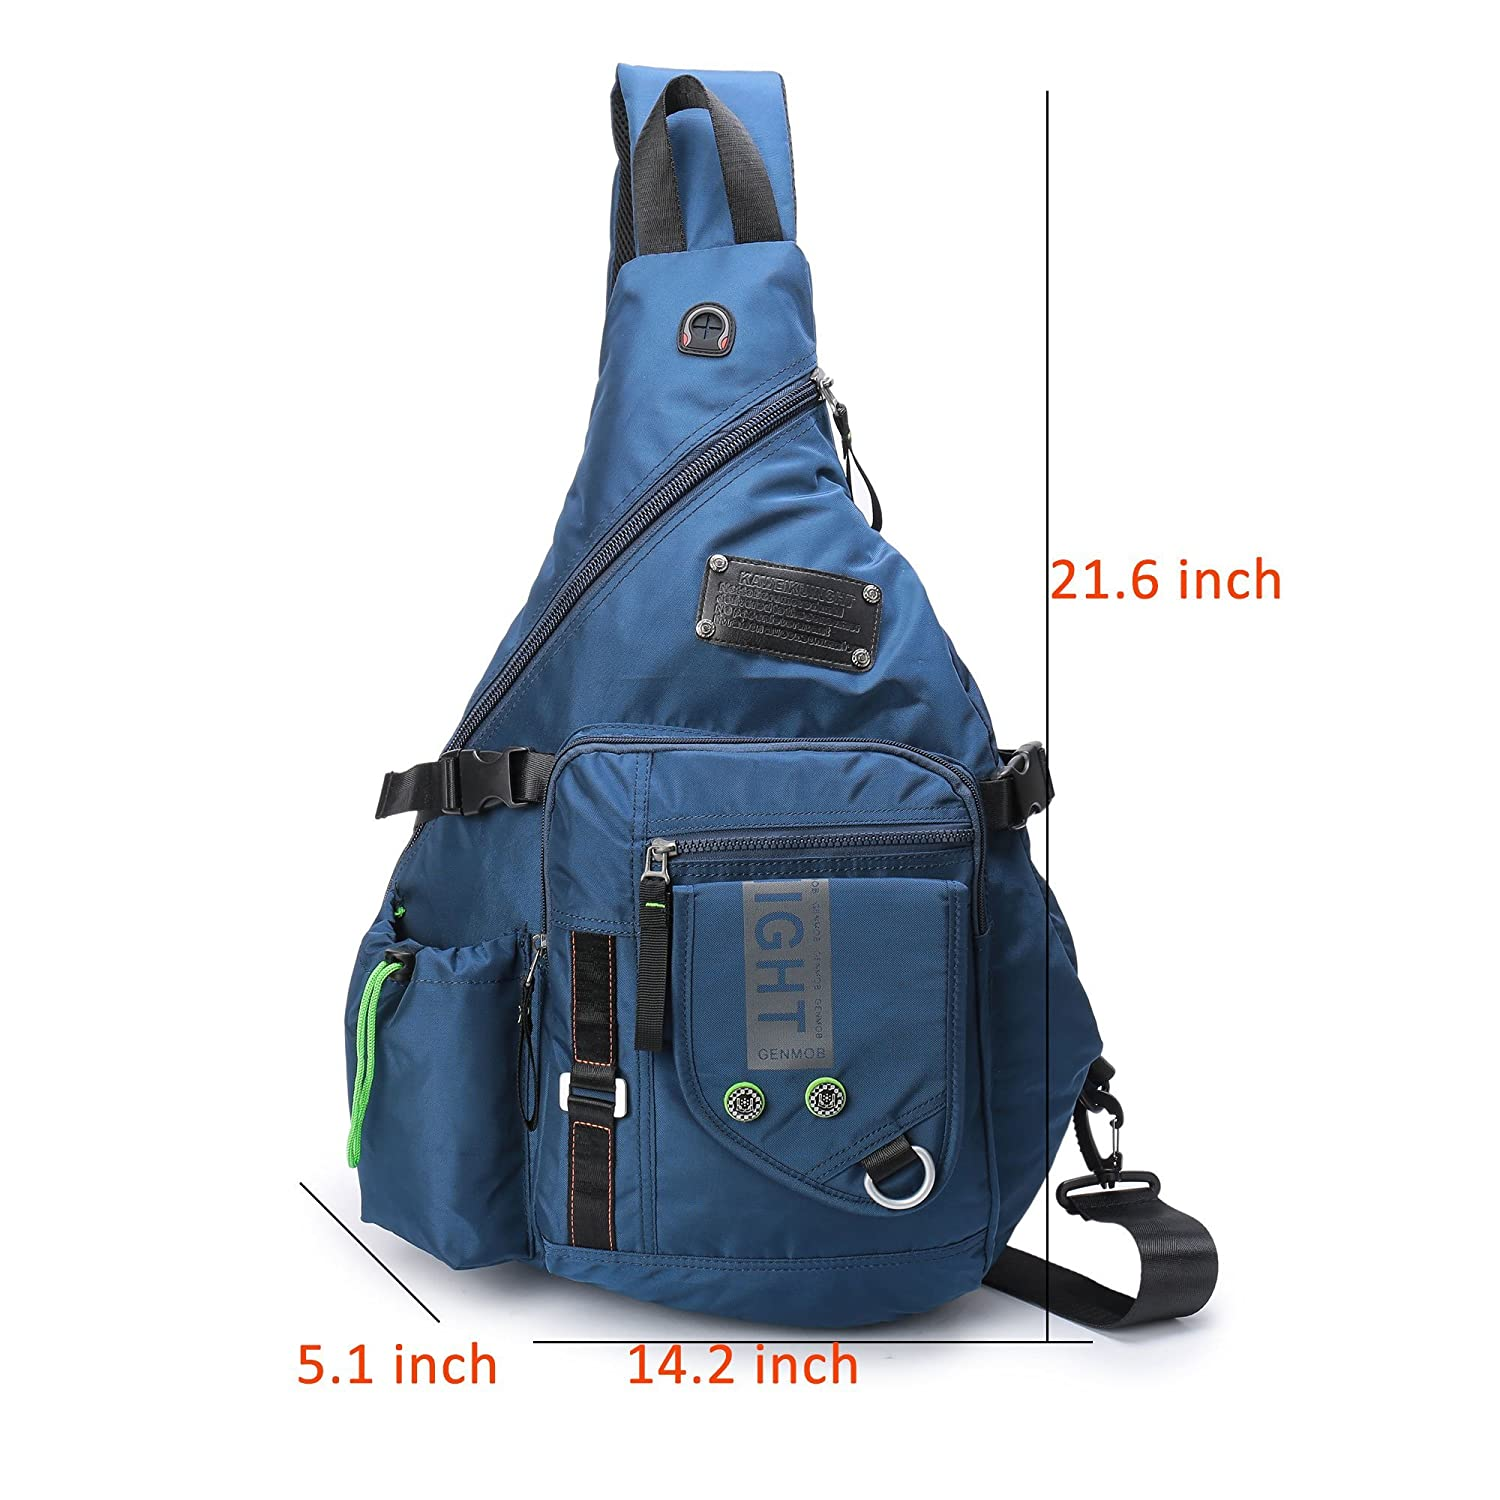 5c34d164d838 Amazon.com  DDDH Large Sling Bags Crossbody Backpack 14.1-Inch Chest  Daypack Travel Bag Book Bag for Men Women(Blue)  Computers   Accessories